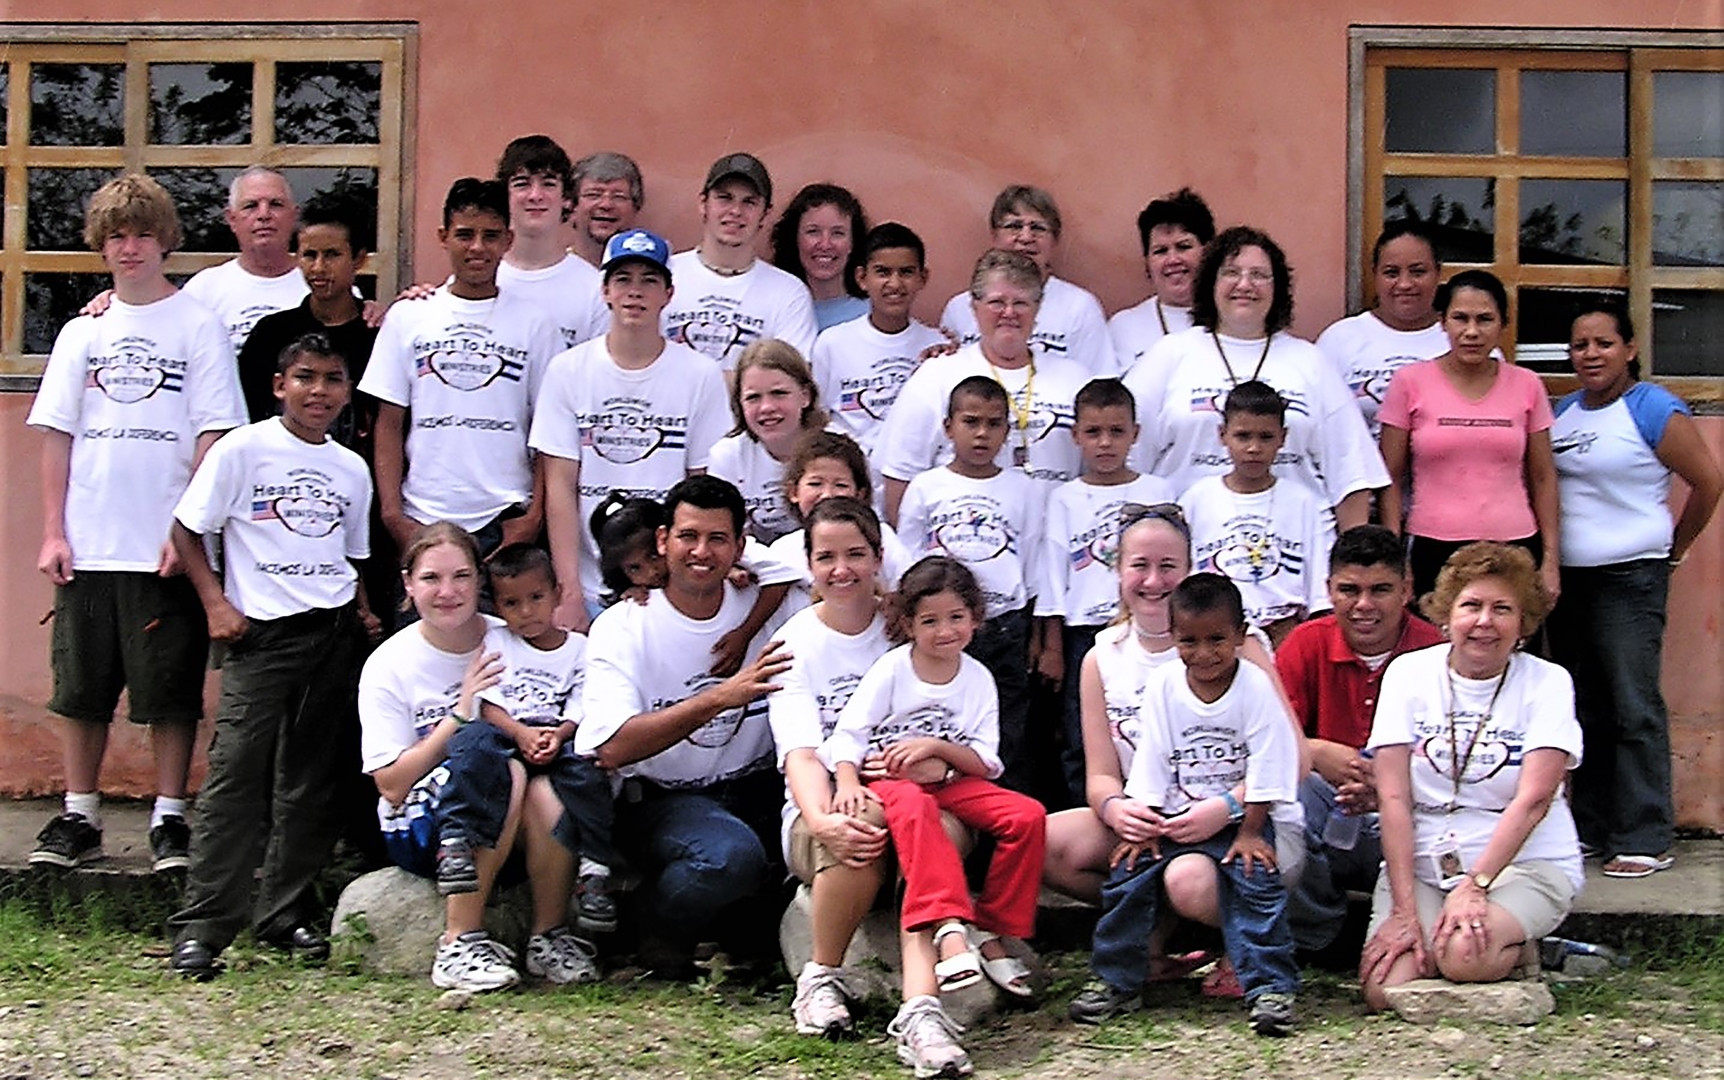 Teams that served at the Children's Village